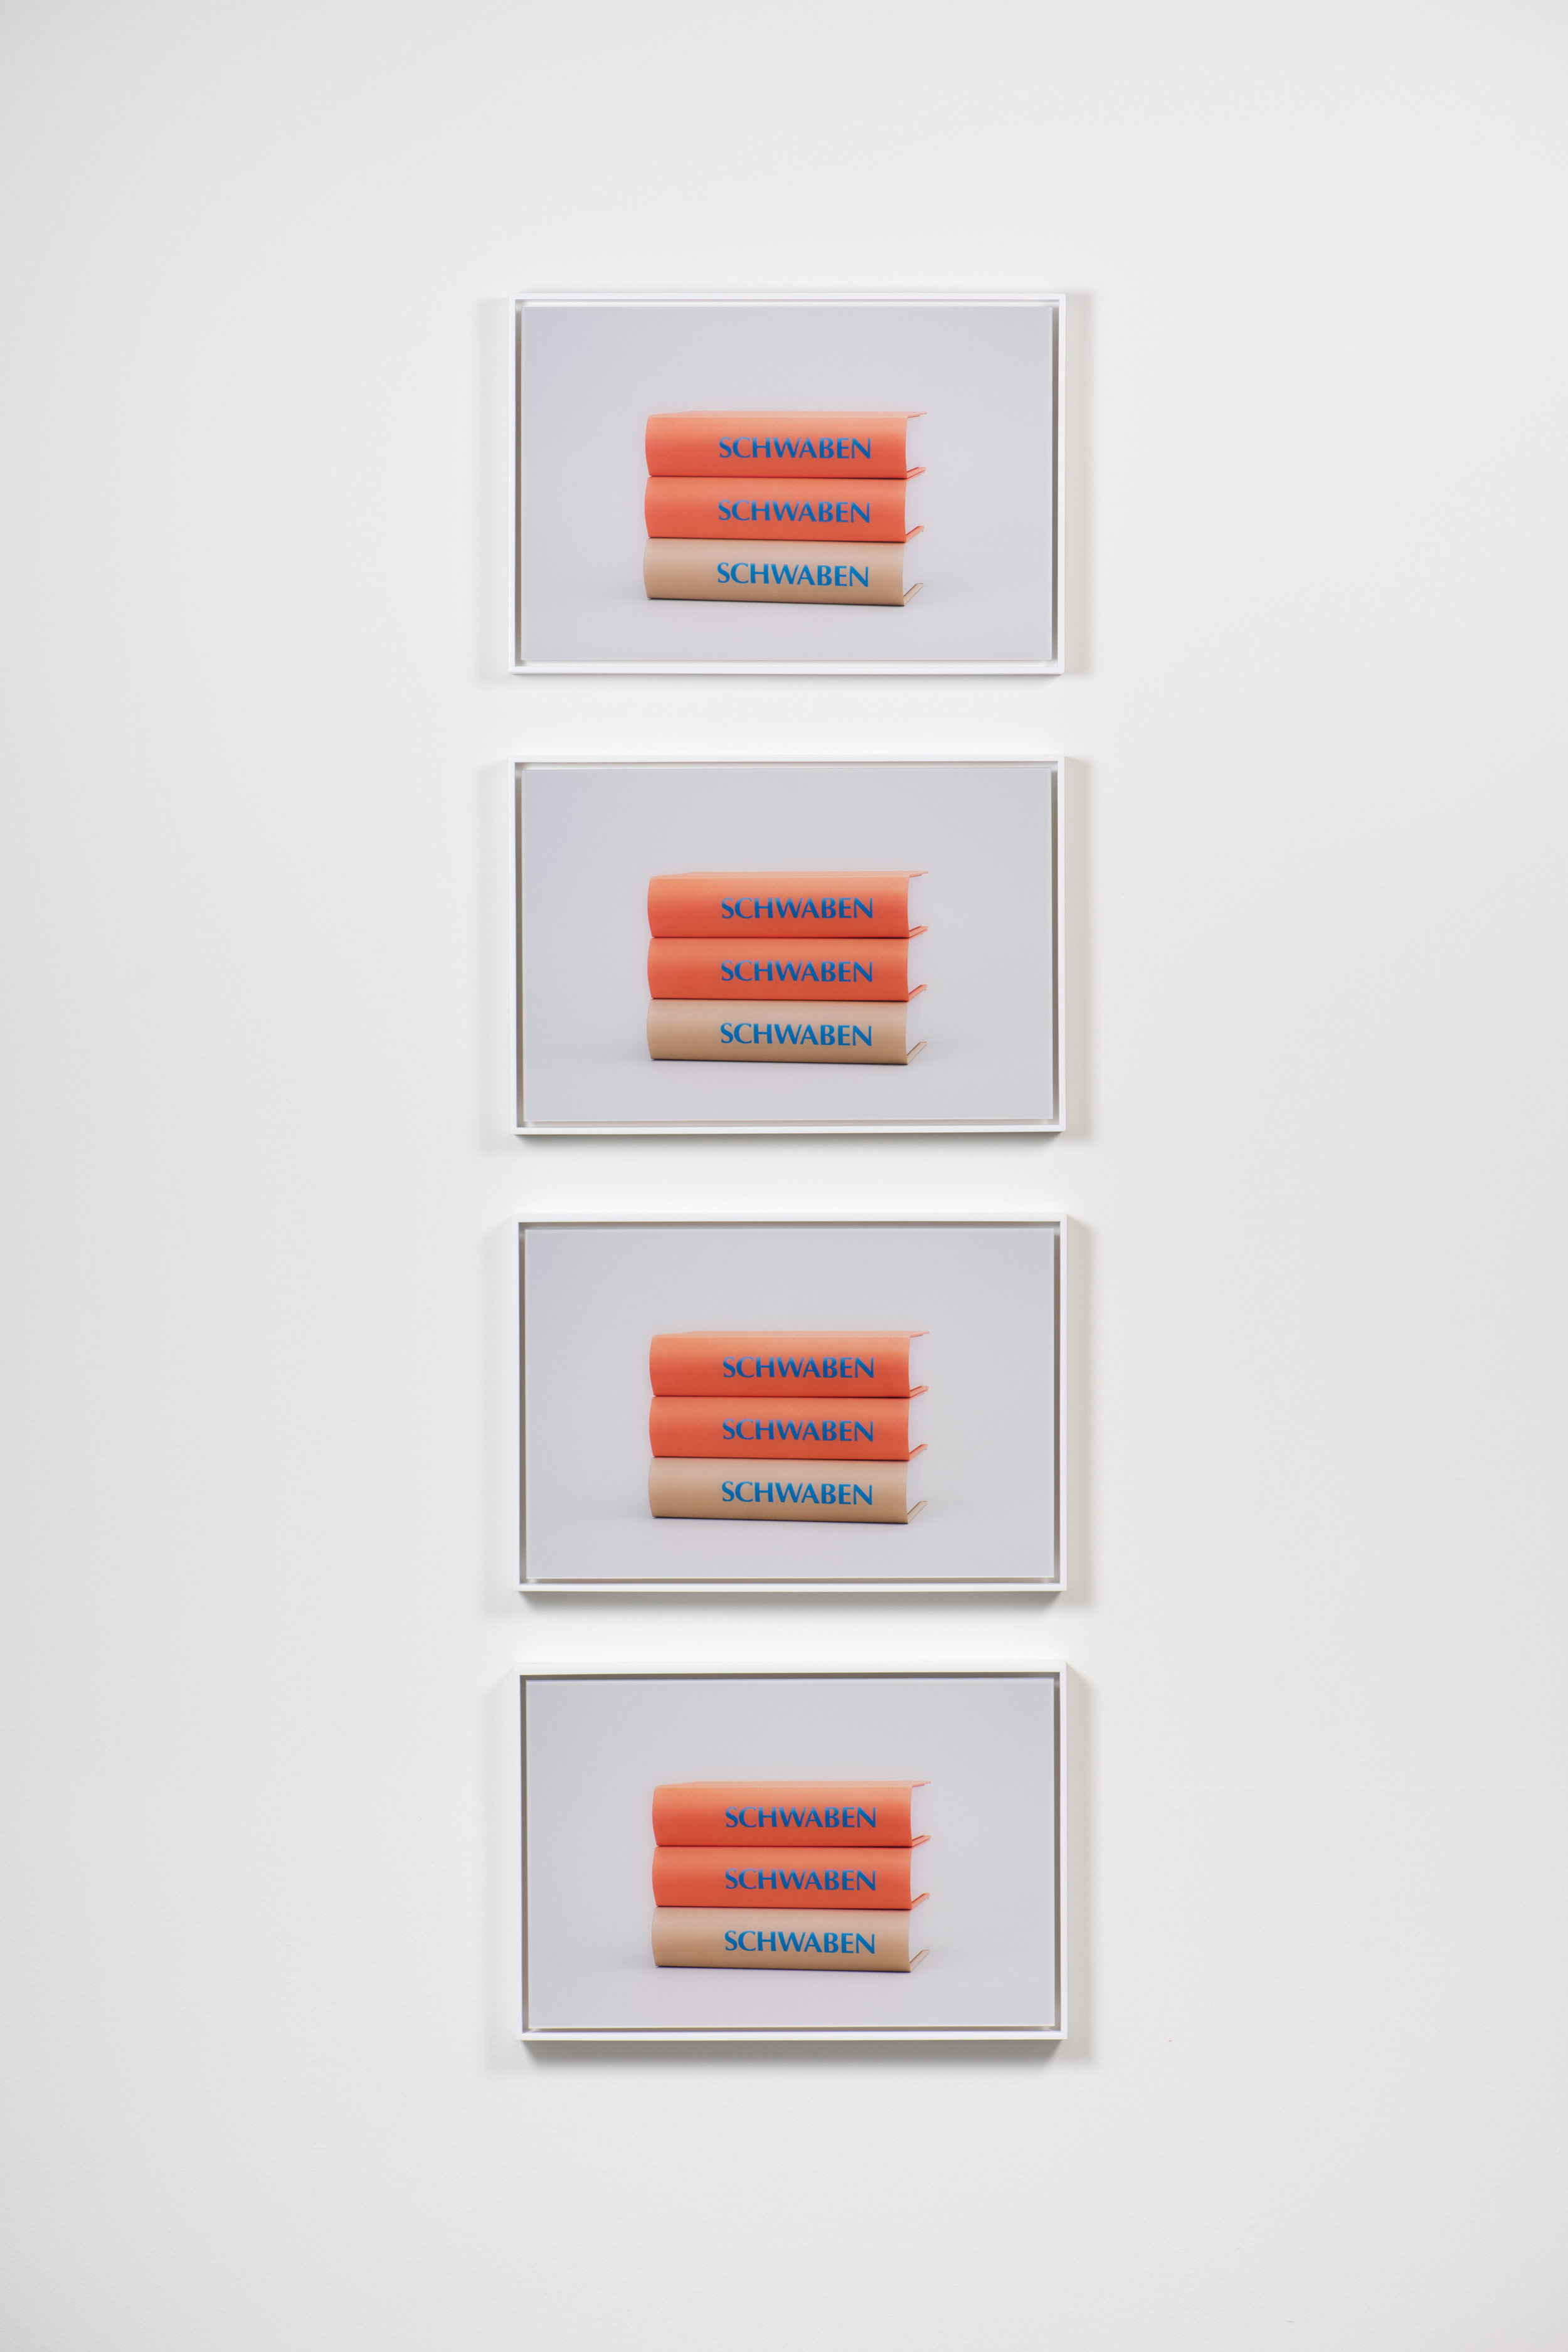 Schwaben (Stack) , 2017 Four framed chromogenic prints 13 3/16 x 19 7/8 inches each Edition of 3 + 2 APs KISC-0011 $8,600